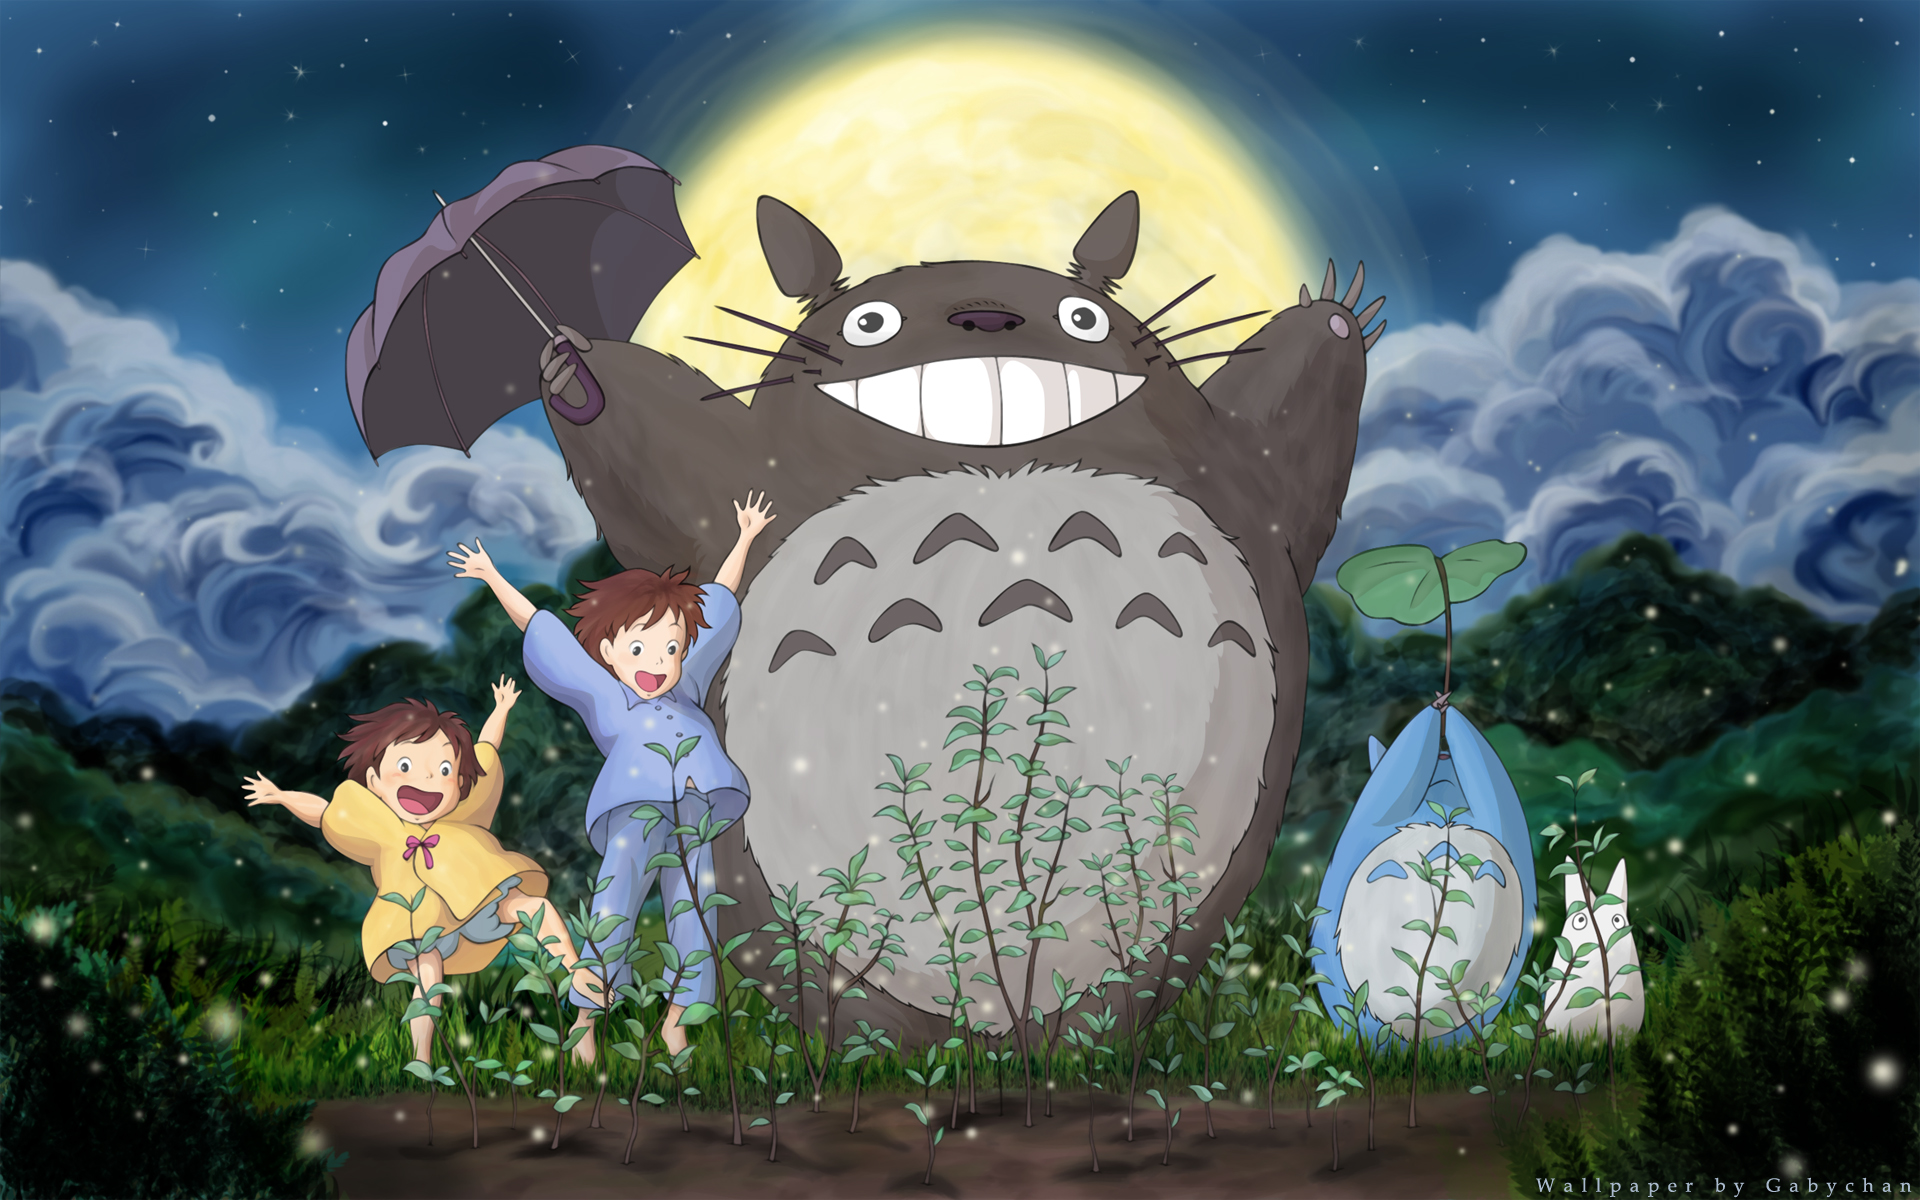 My Neighbor Totoro Backgrounds, Compatible - PC, Mobile, Gadgets| 1920x1200 px